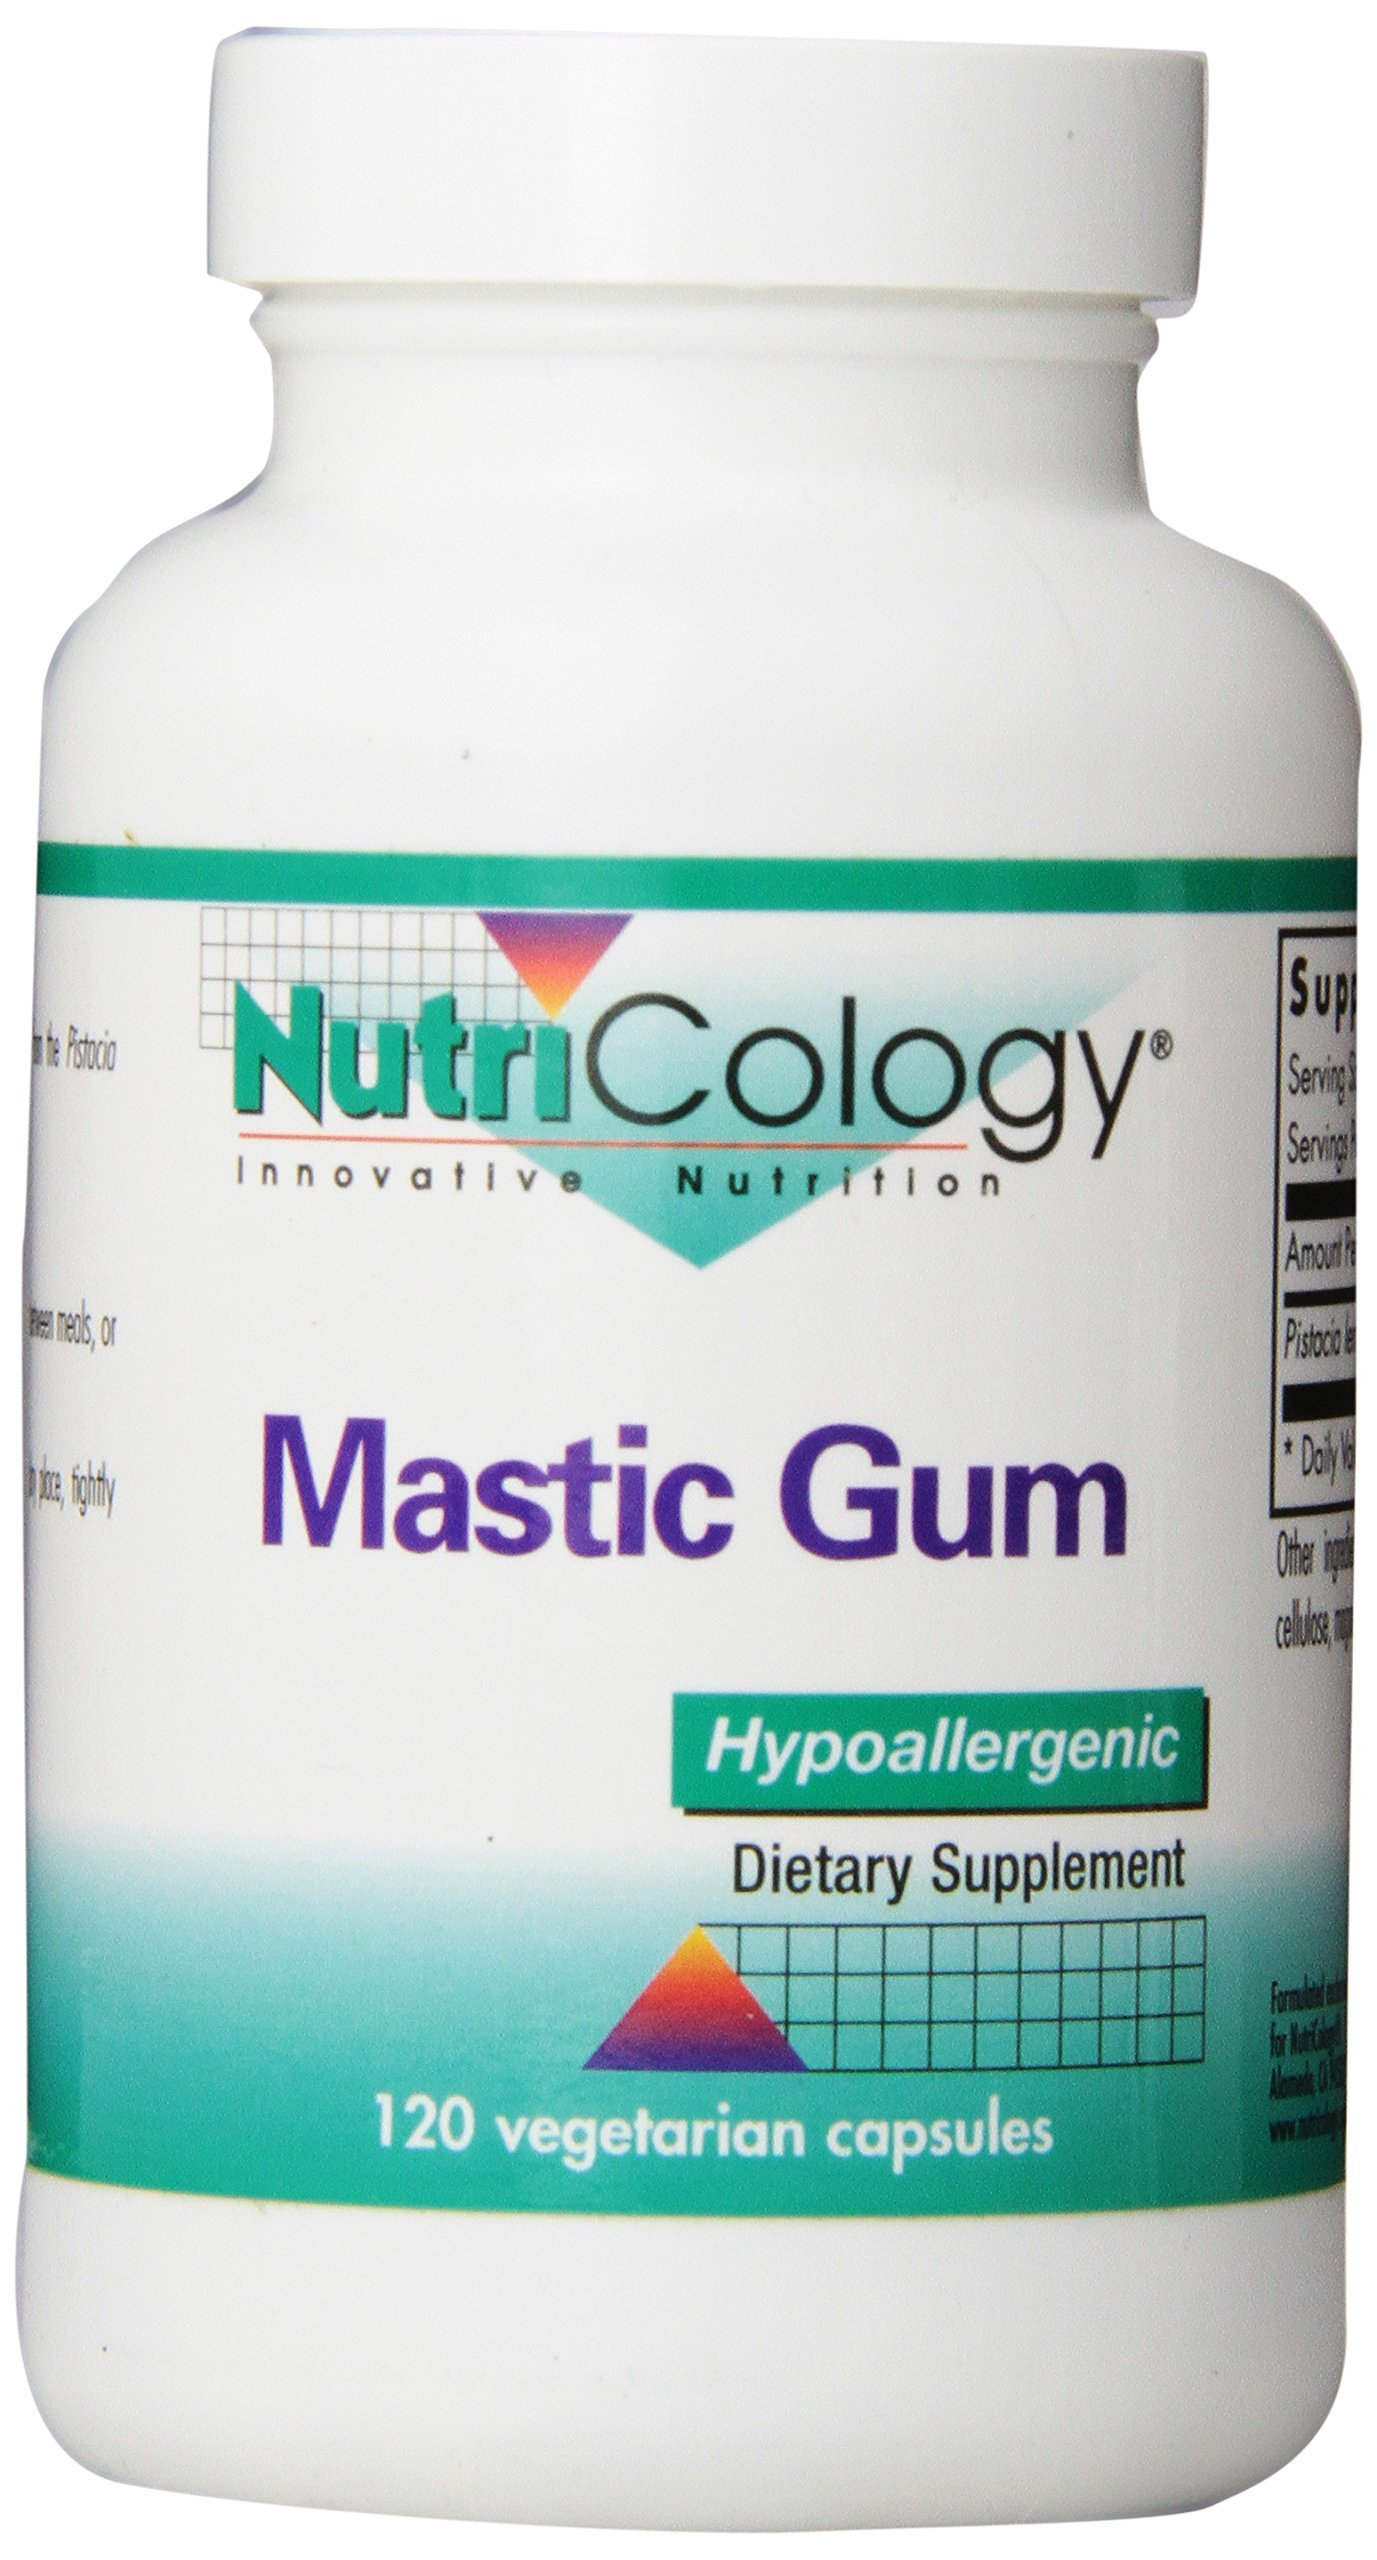 Nutricology Mastic Gum Vegetarian Capsules, 120 Count by Nutricology